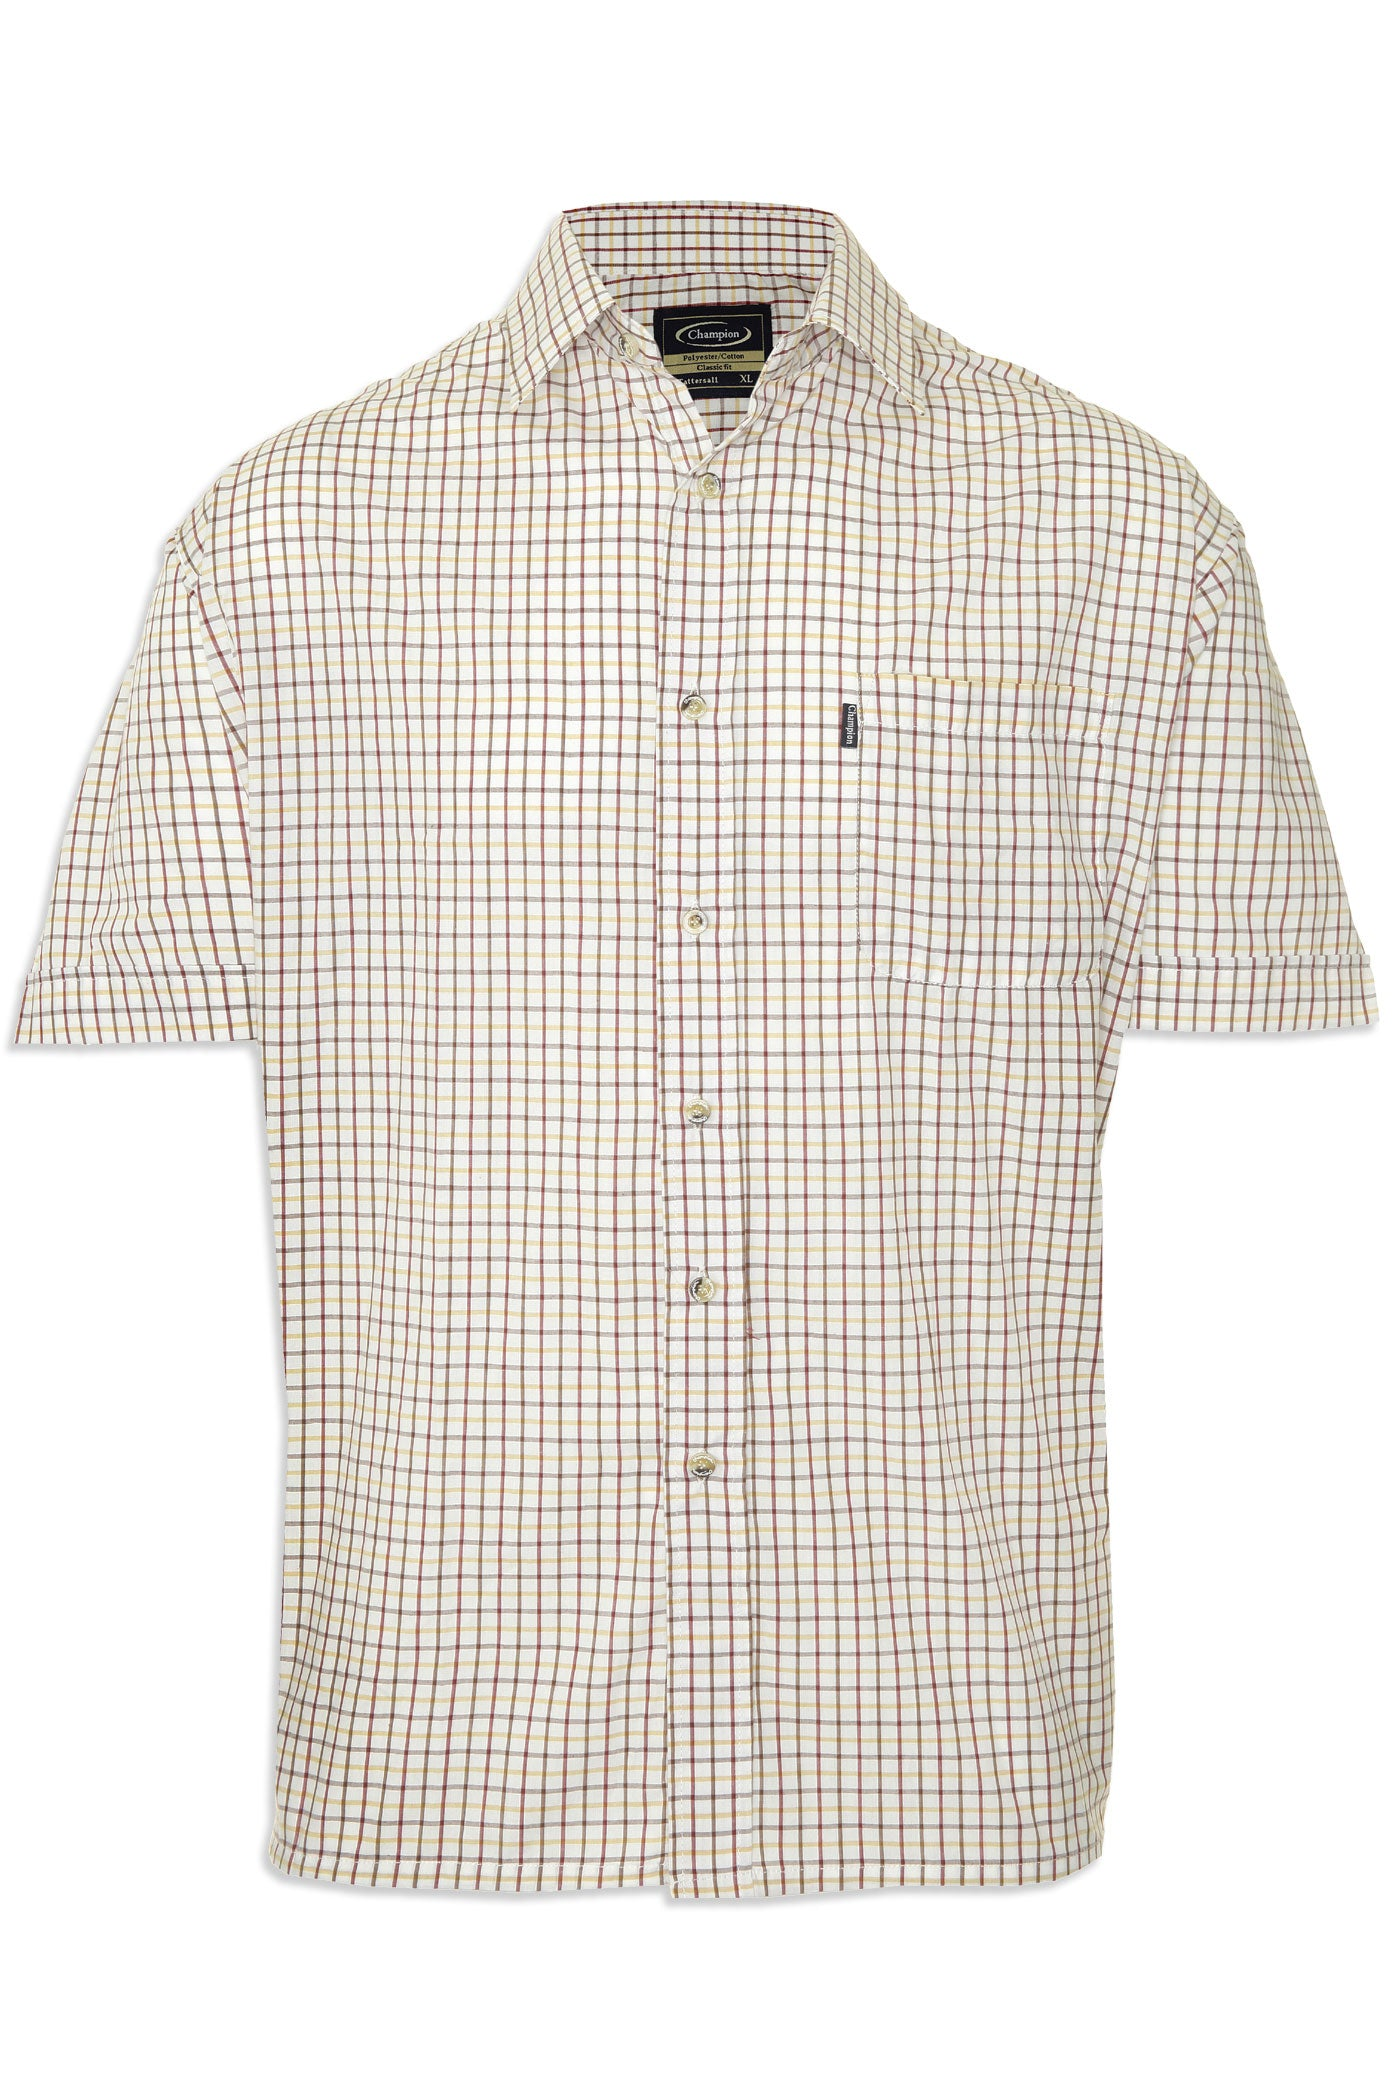 red check Champion summer Tattersall, the classic country tattersall check shirt with short sleeves, ideal for summer